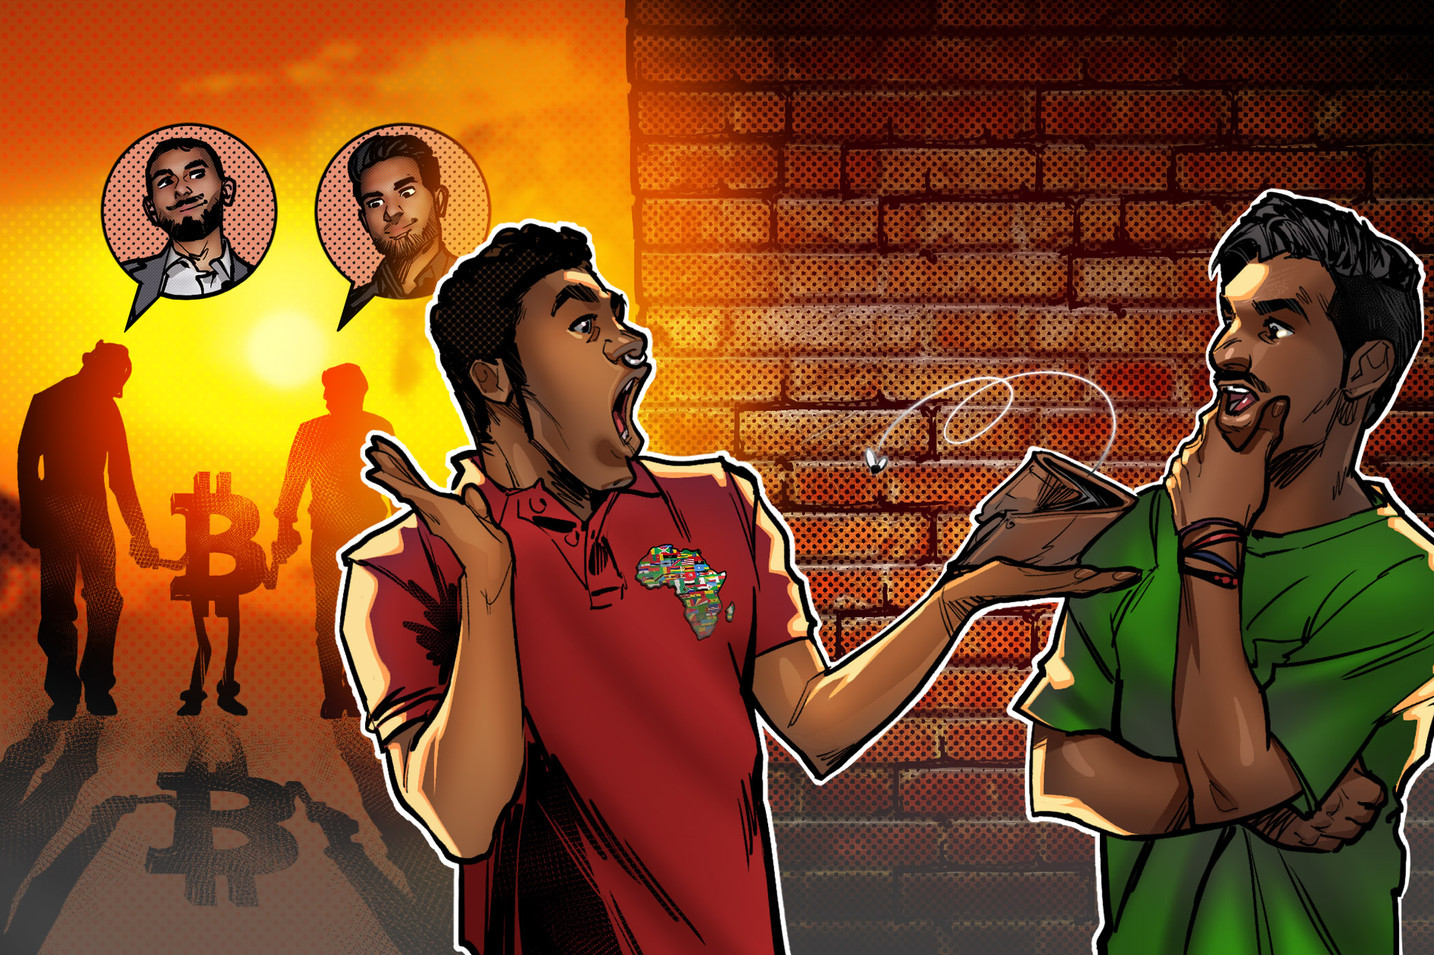 Africrypt turns sour on investors: Founders flee as court cases build up